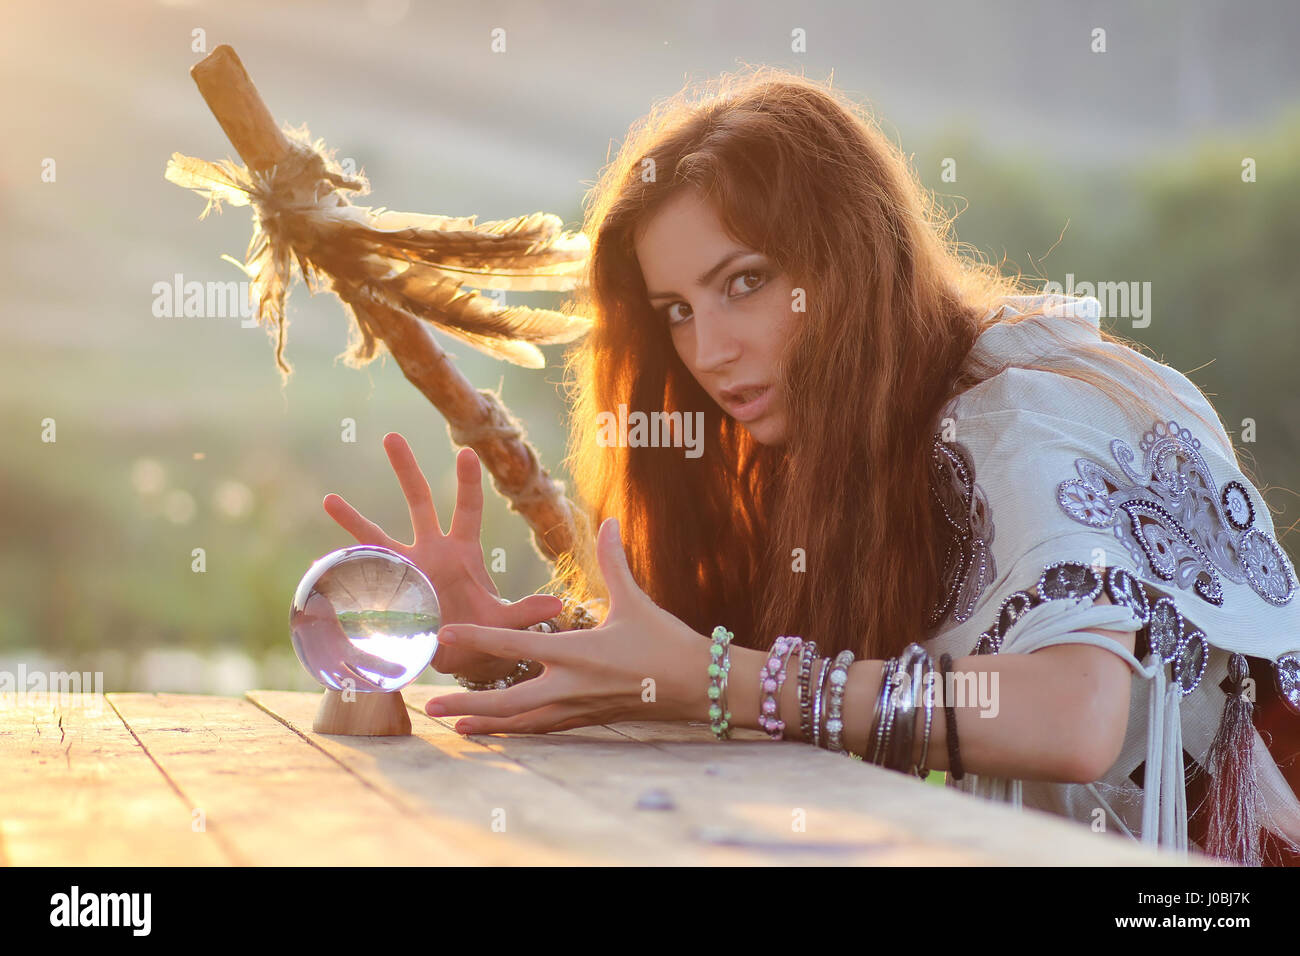 witch with crystal ball at sunset - Stock Image